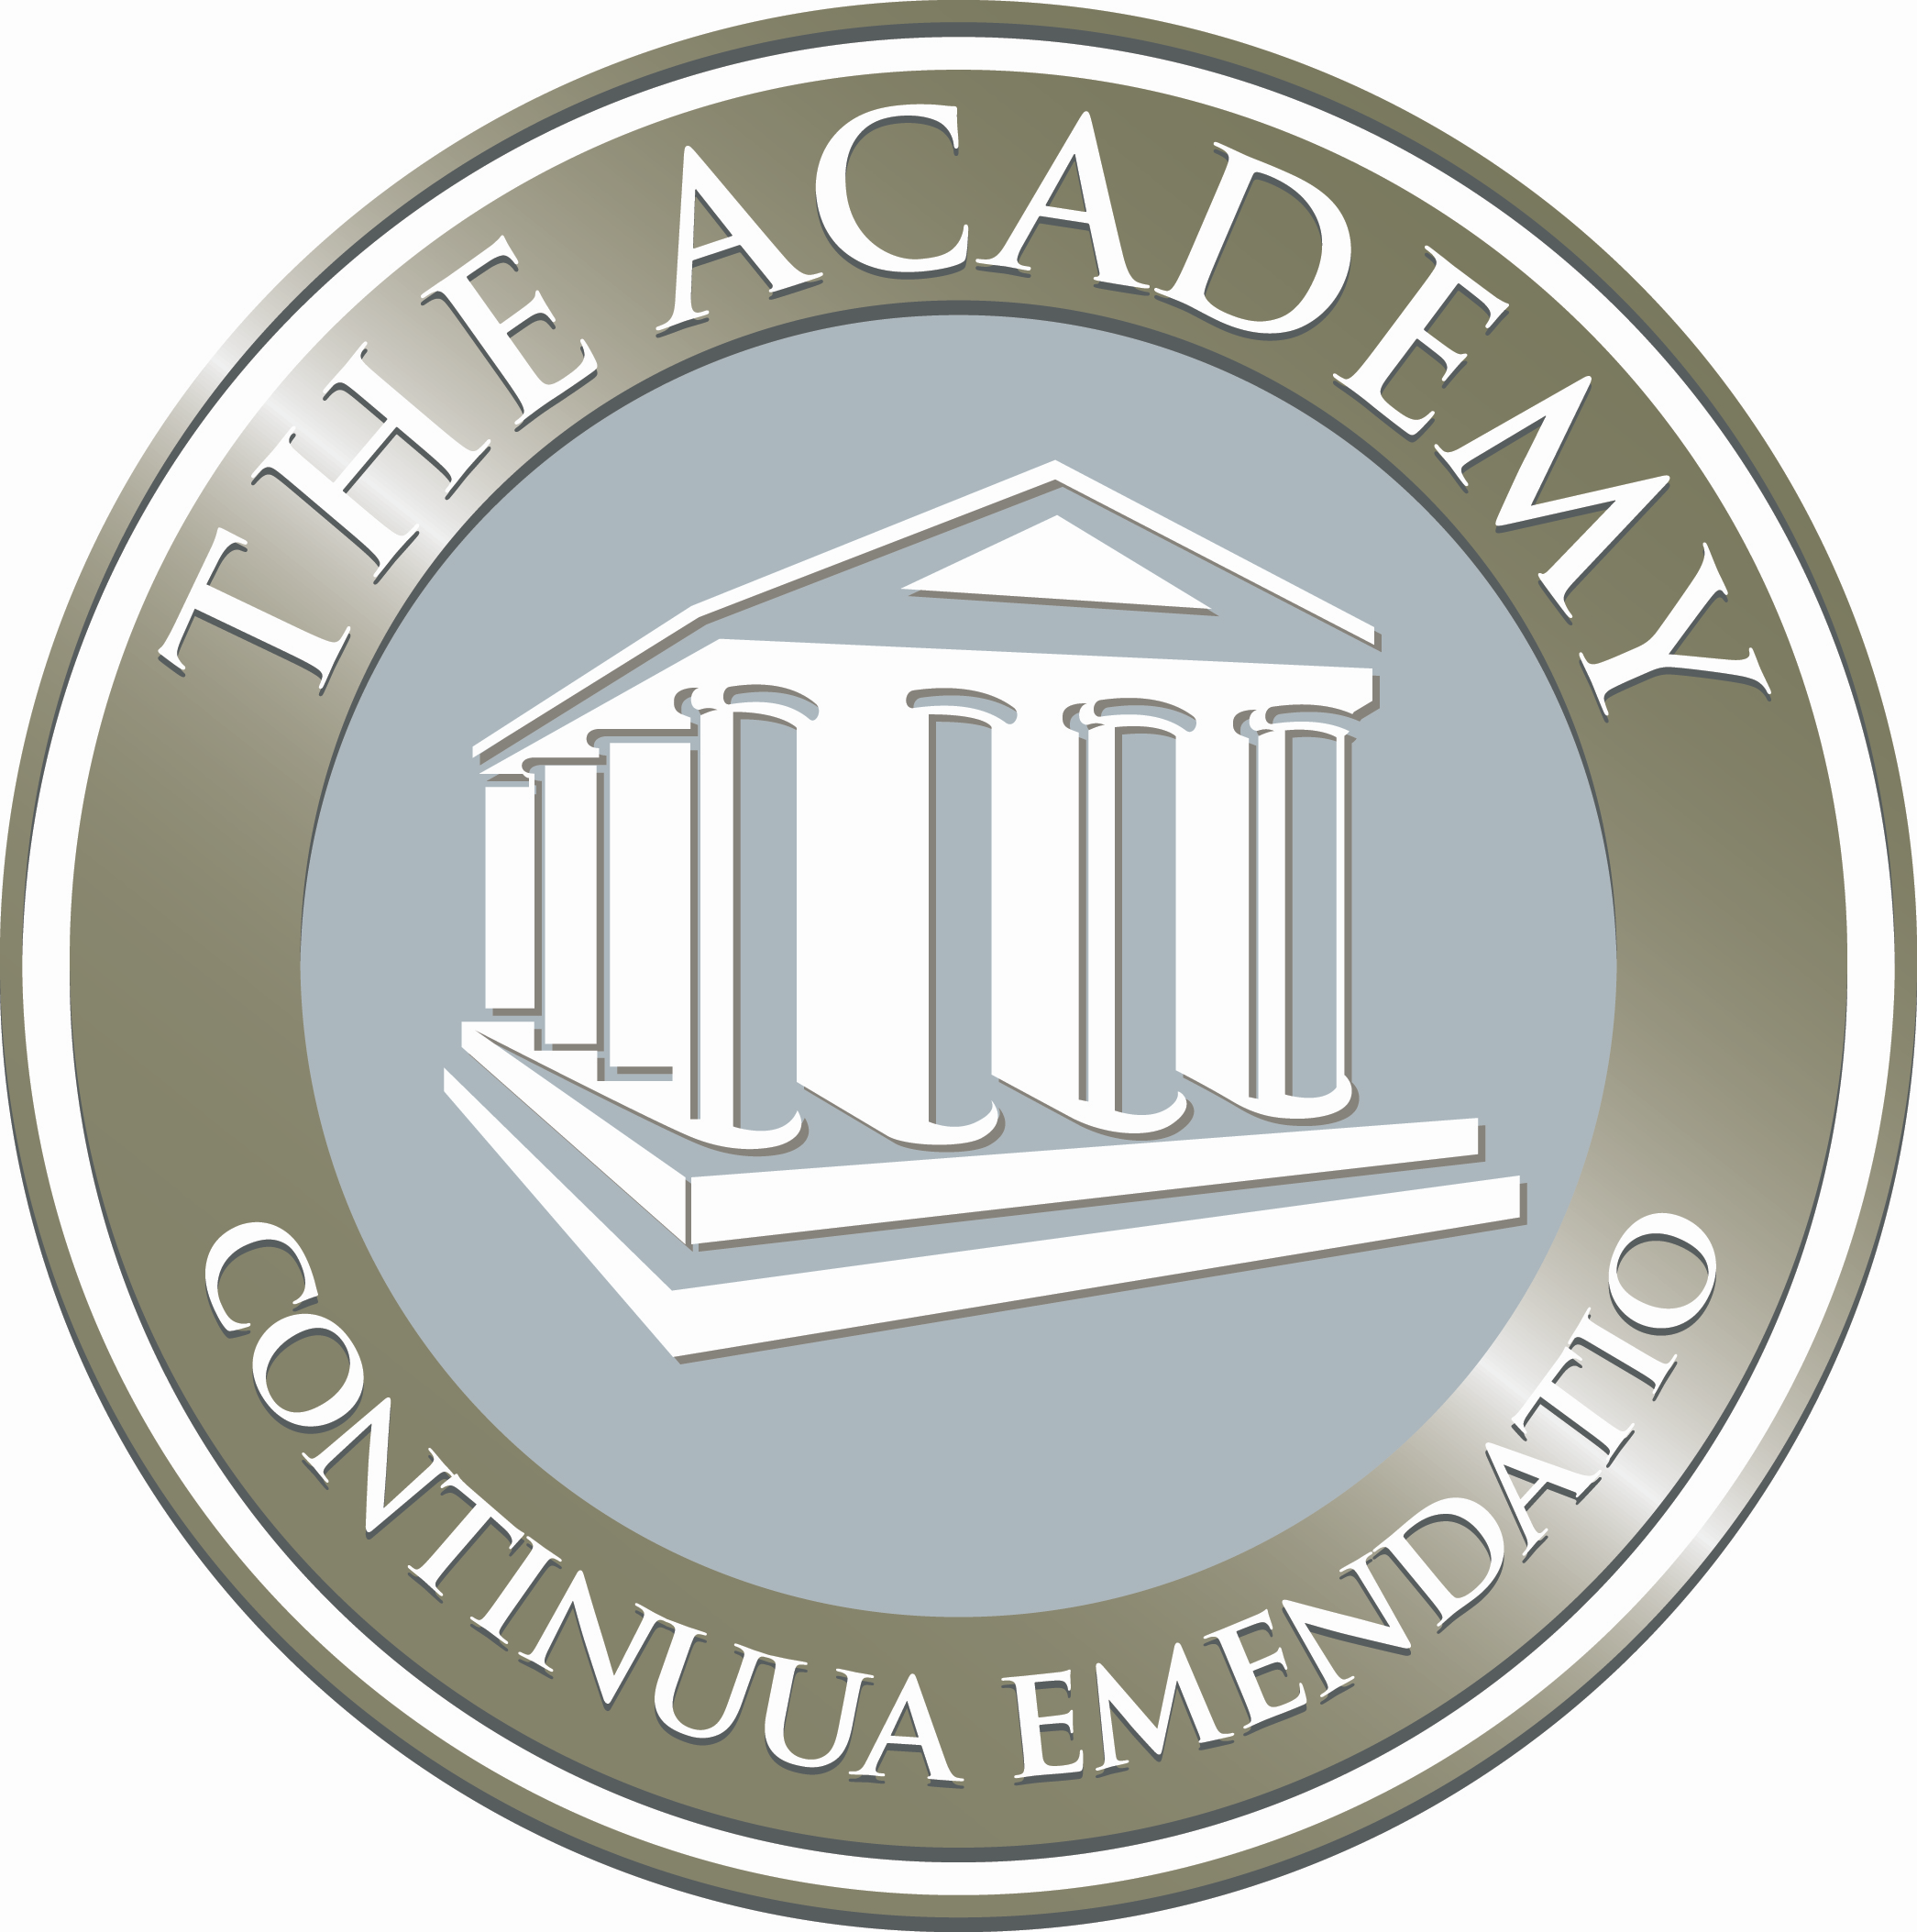 The Academy of South SL